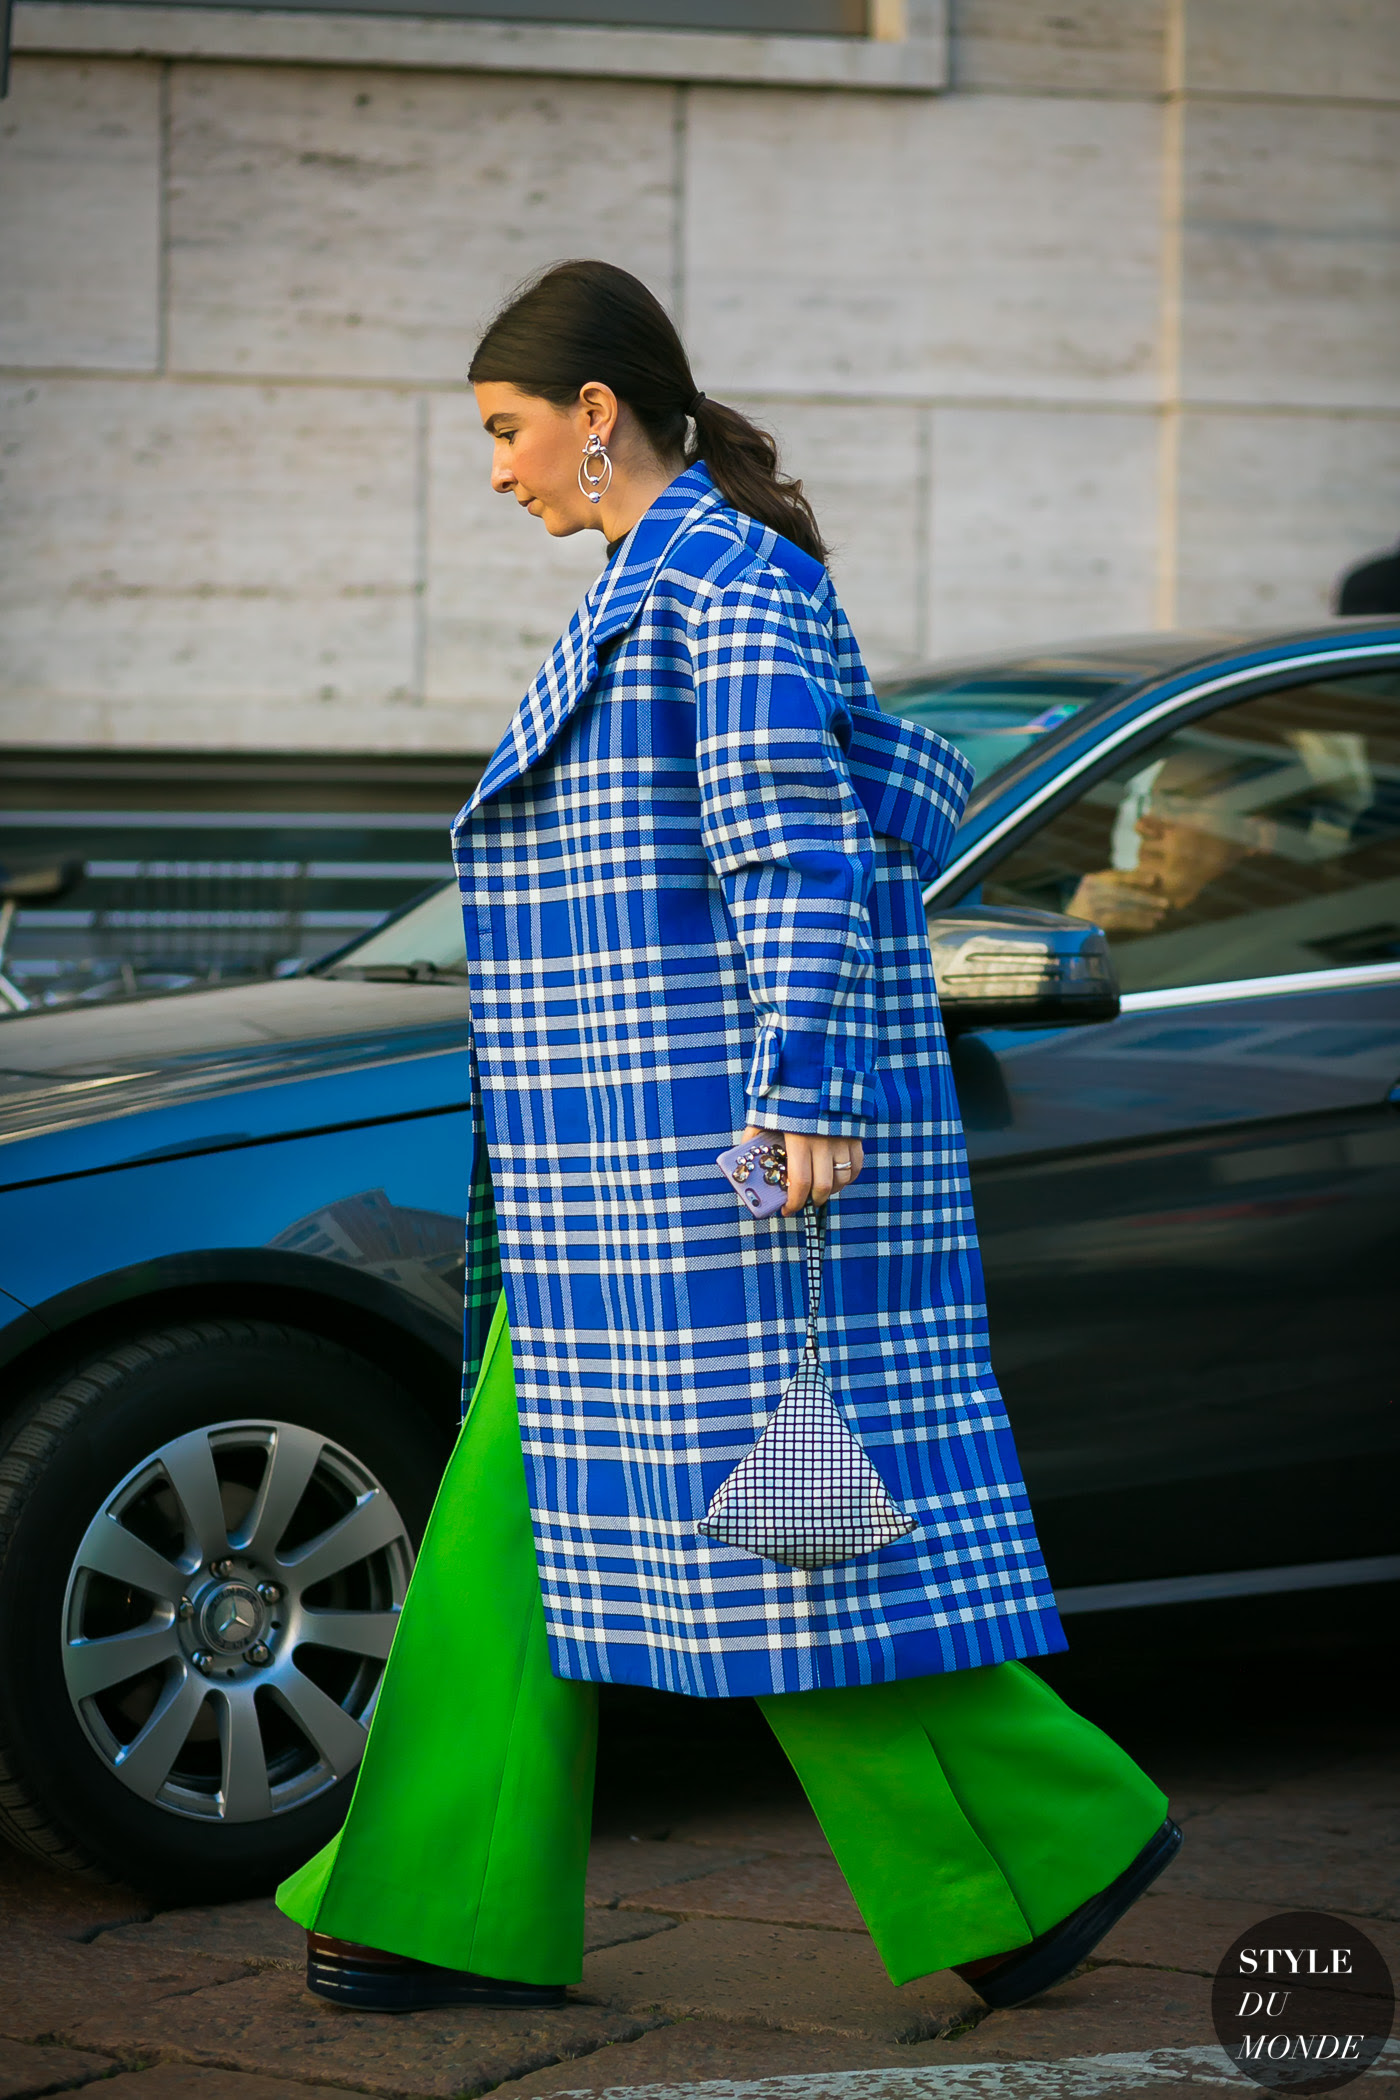 http://www.styledumonde.com/wp-content/uploads/2017/01/Jacquemus-Plaid-Coat-by-STYLEDUMONDE-Street-Style-Fashion-Photography0E2A3510-700x1050@2x.jpg